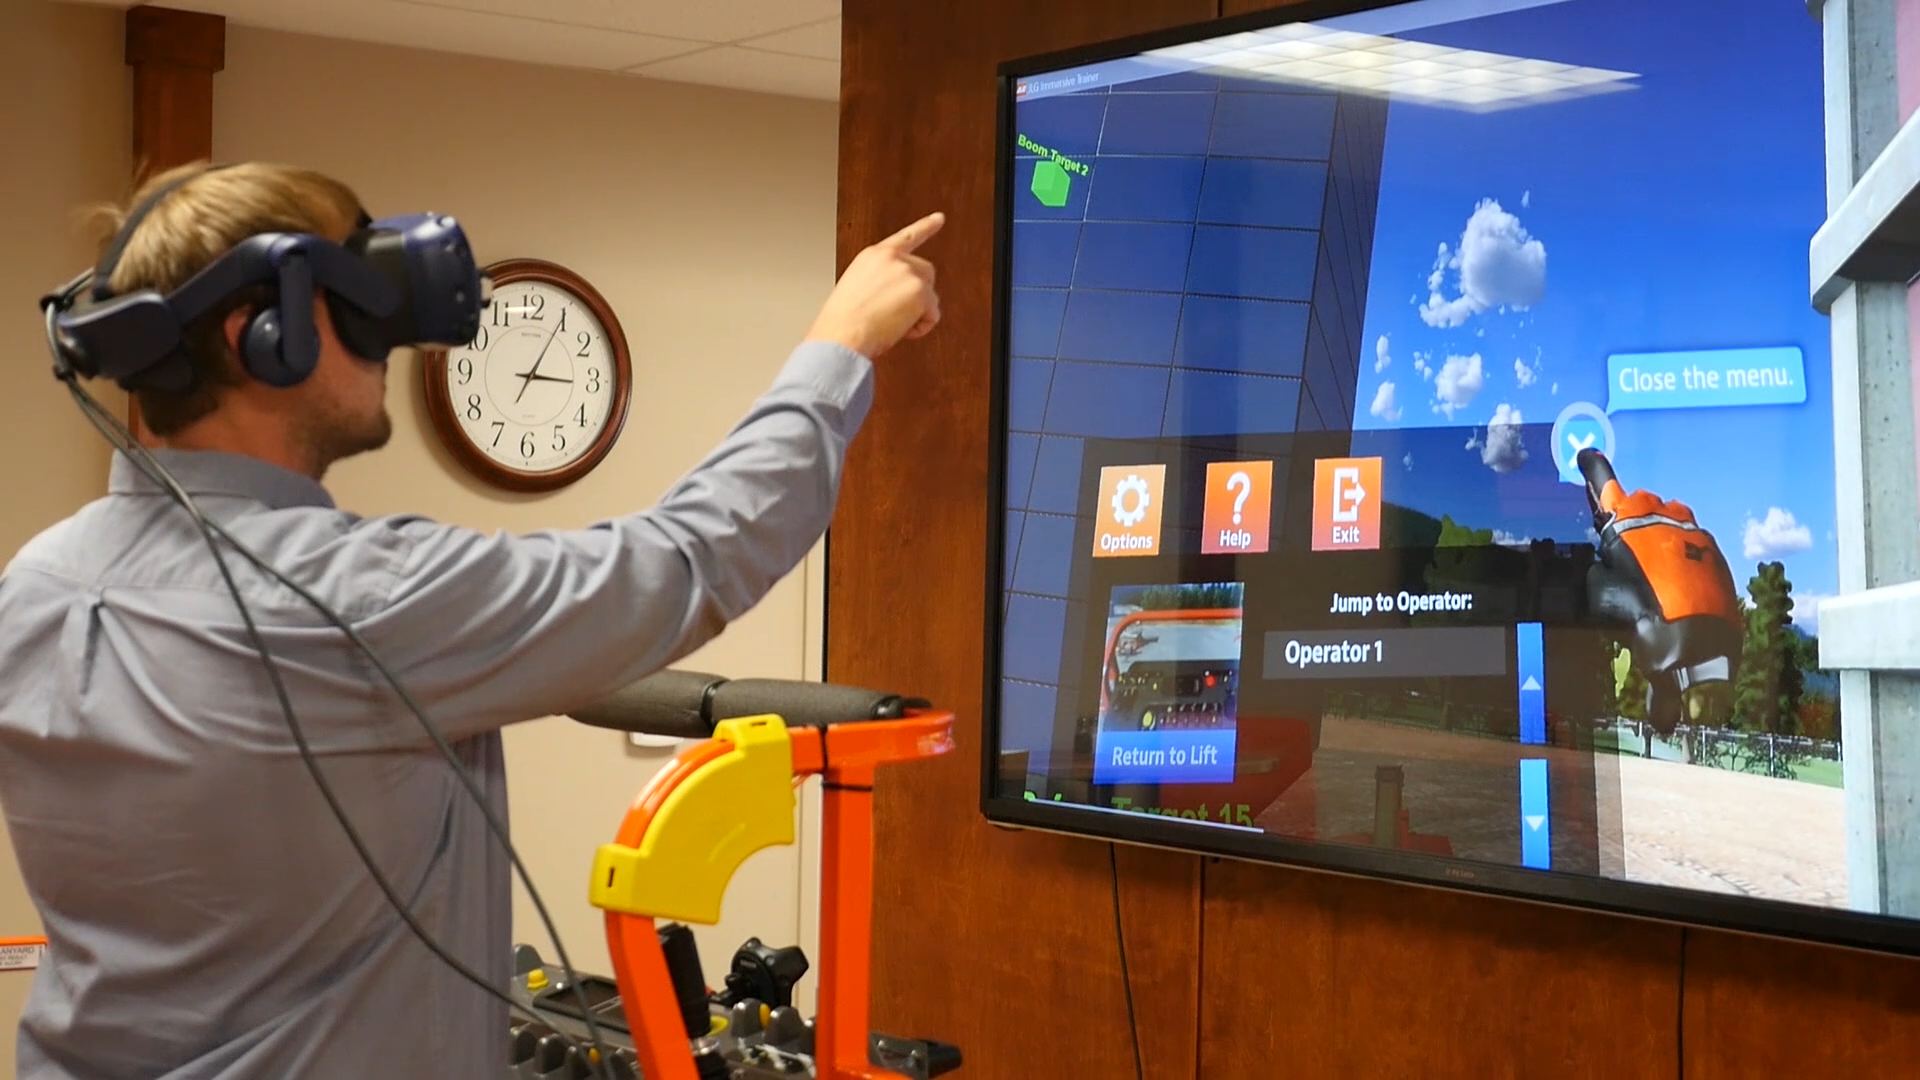 JLG Industries Equipment Simulator by ForgeFX Simulations Includes Hand-Tracking